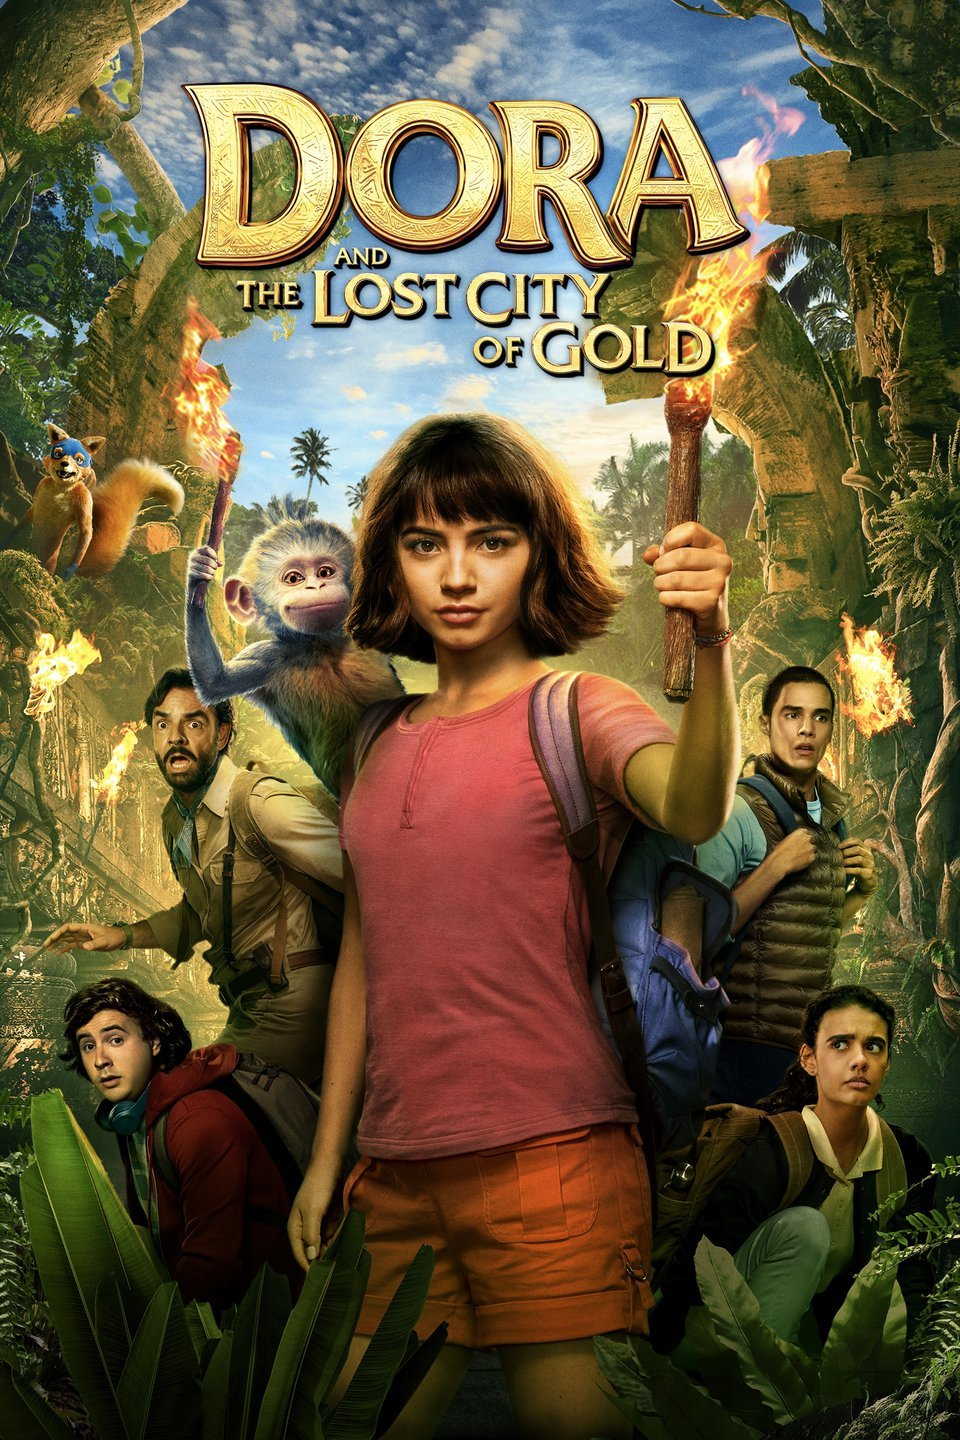 Movies @ Meadows: Dora and the Lost City of Gold